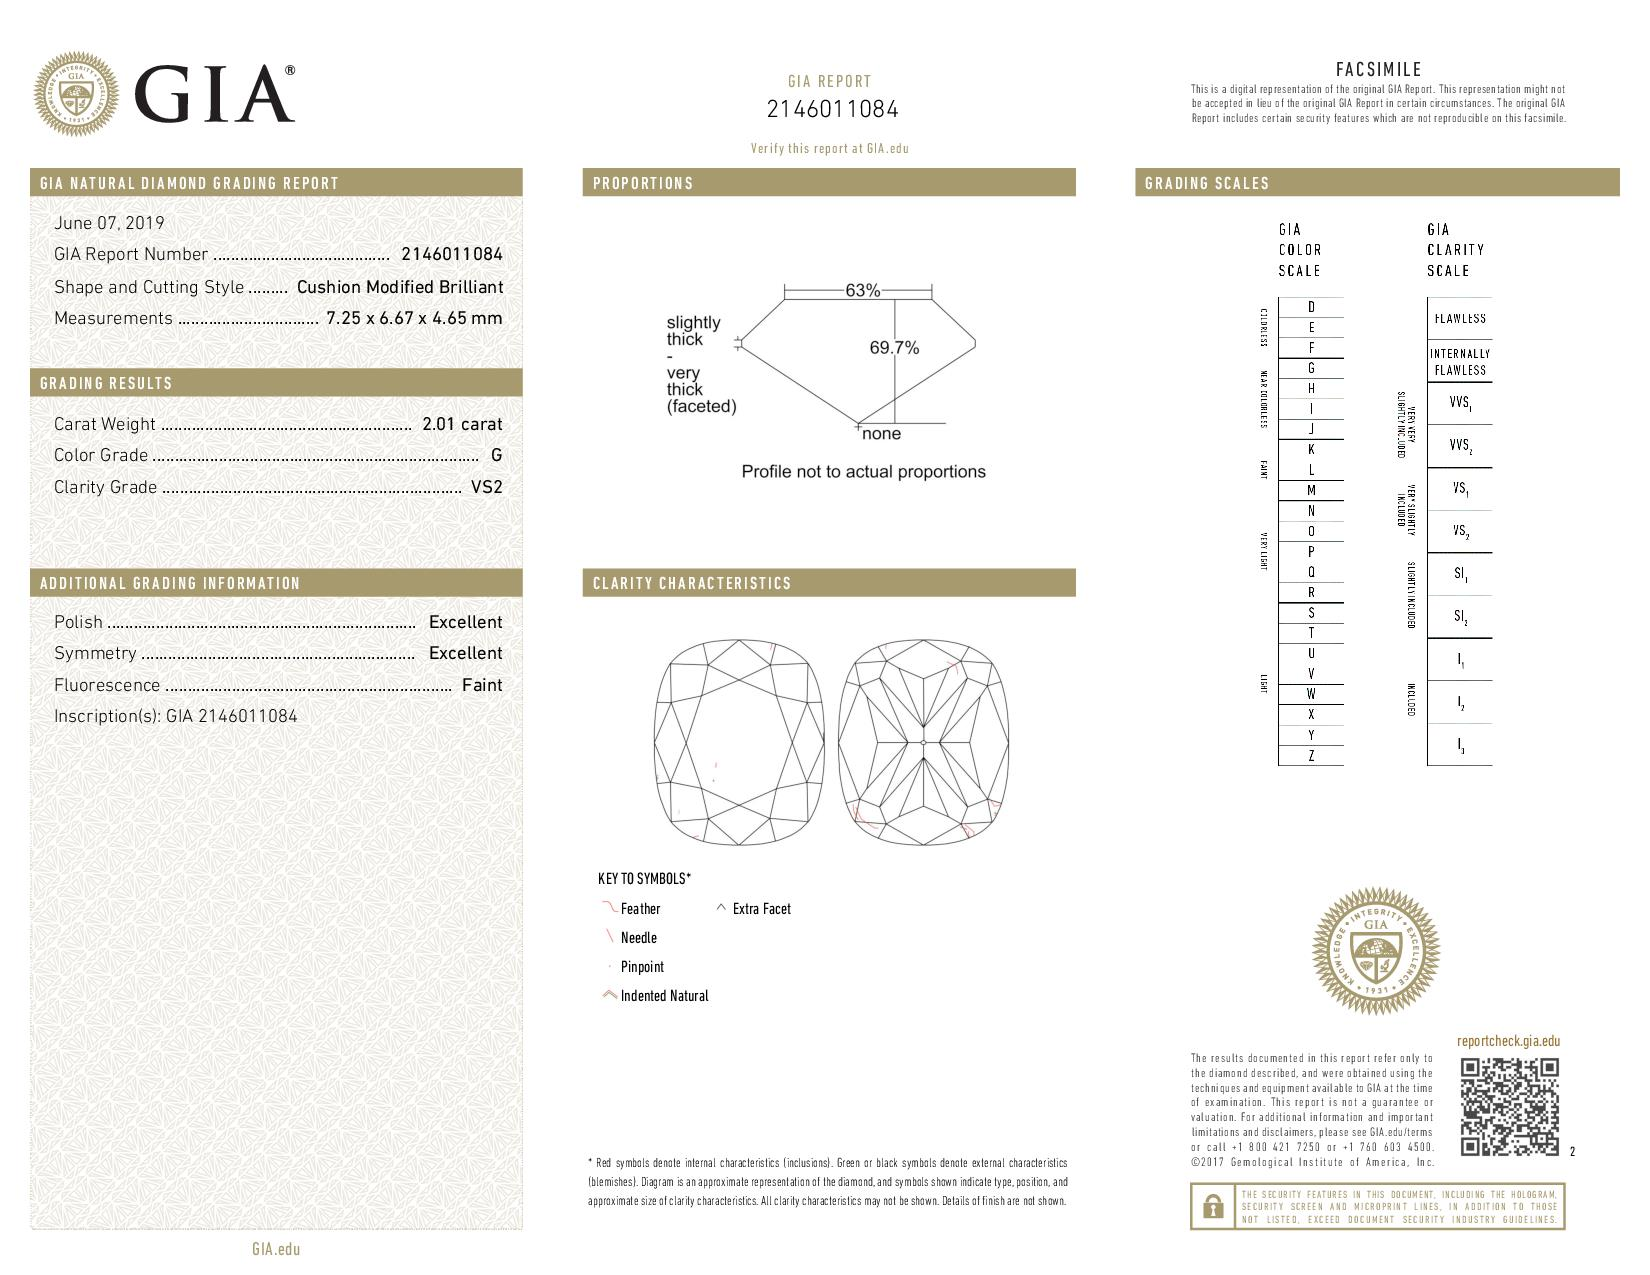 This is a 2.01 carat cushion shape, G color, VS2 clarity natural diamond accompanied by a GIA grading report.